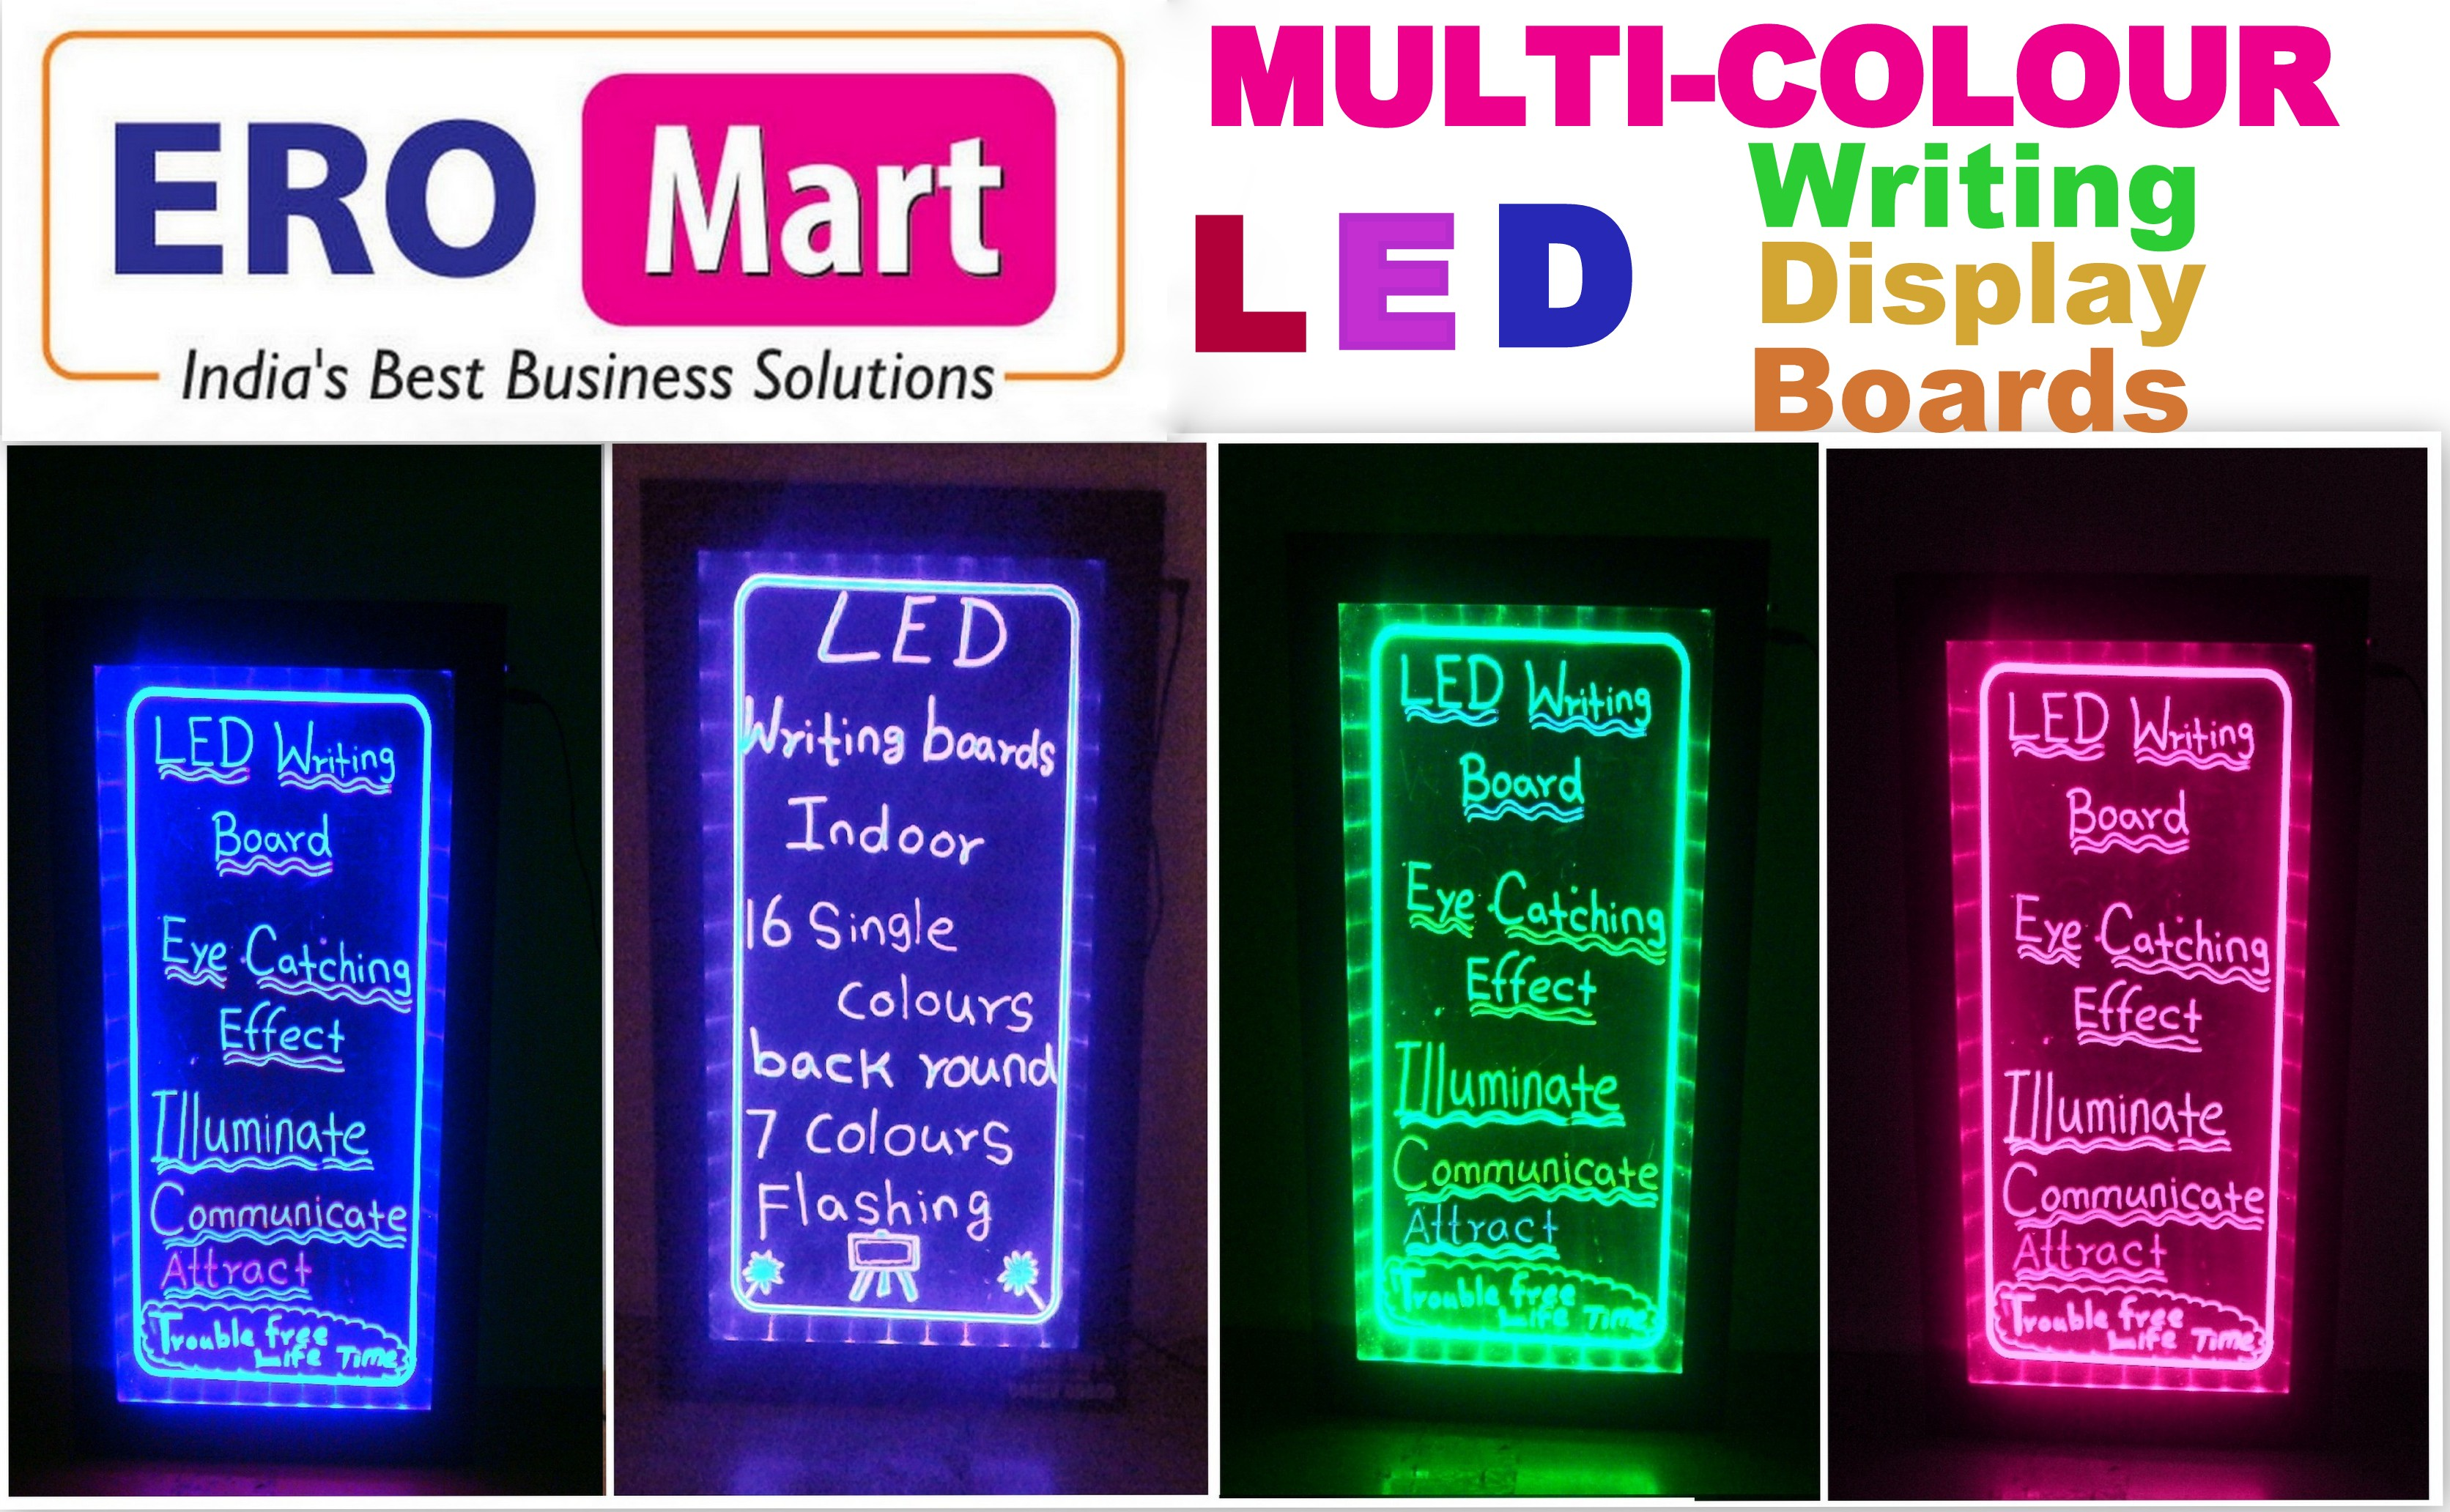 Led Writing Board Manufacturers Ero Mart Leading Cash Counting Color Changing Light Circuit Buy Boardsled